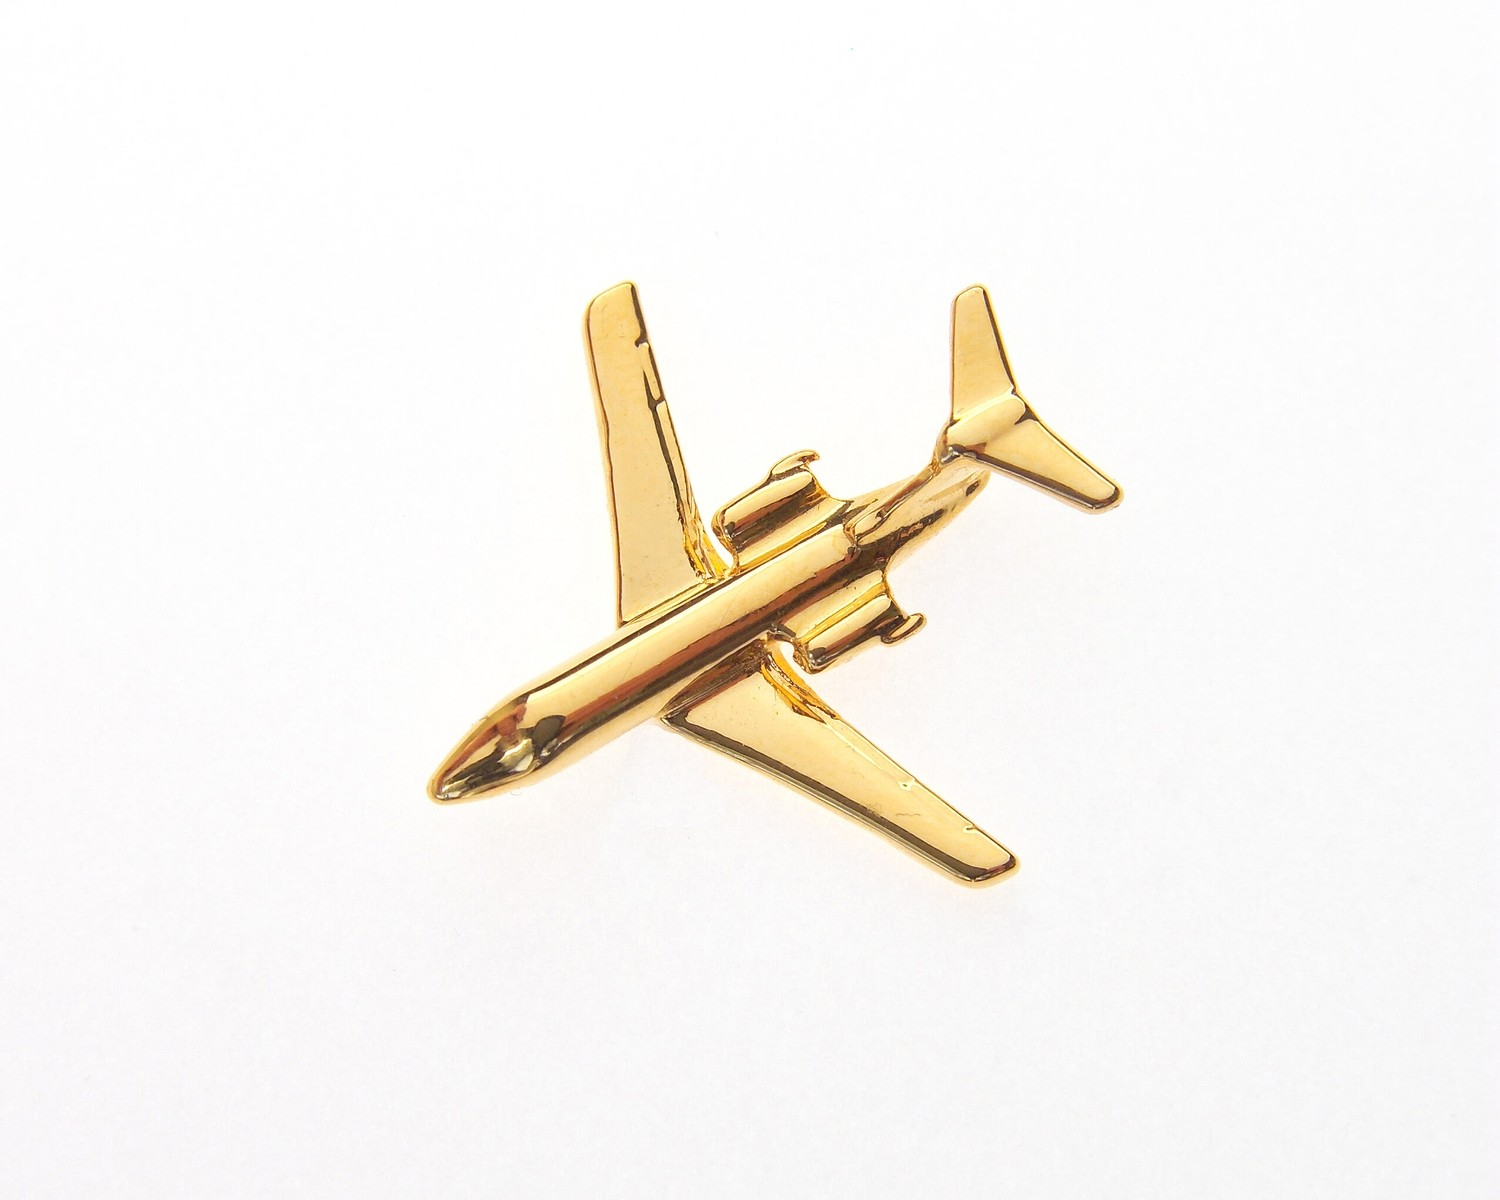 Cessna Citation III / IV Gold Plated Tie / Lapel Pin